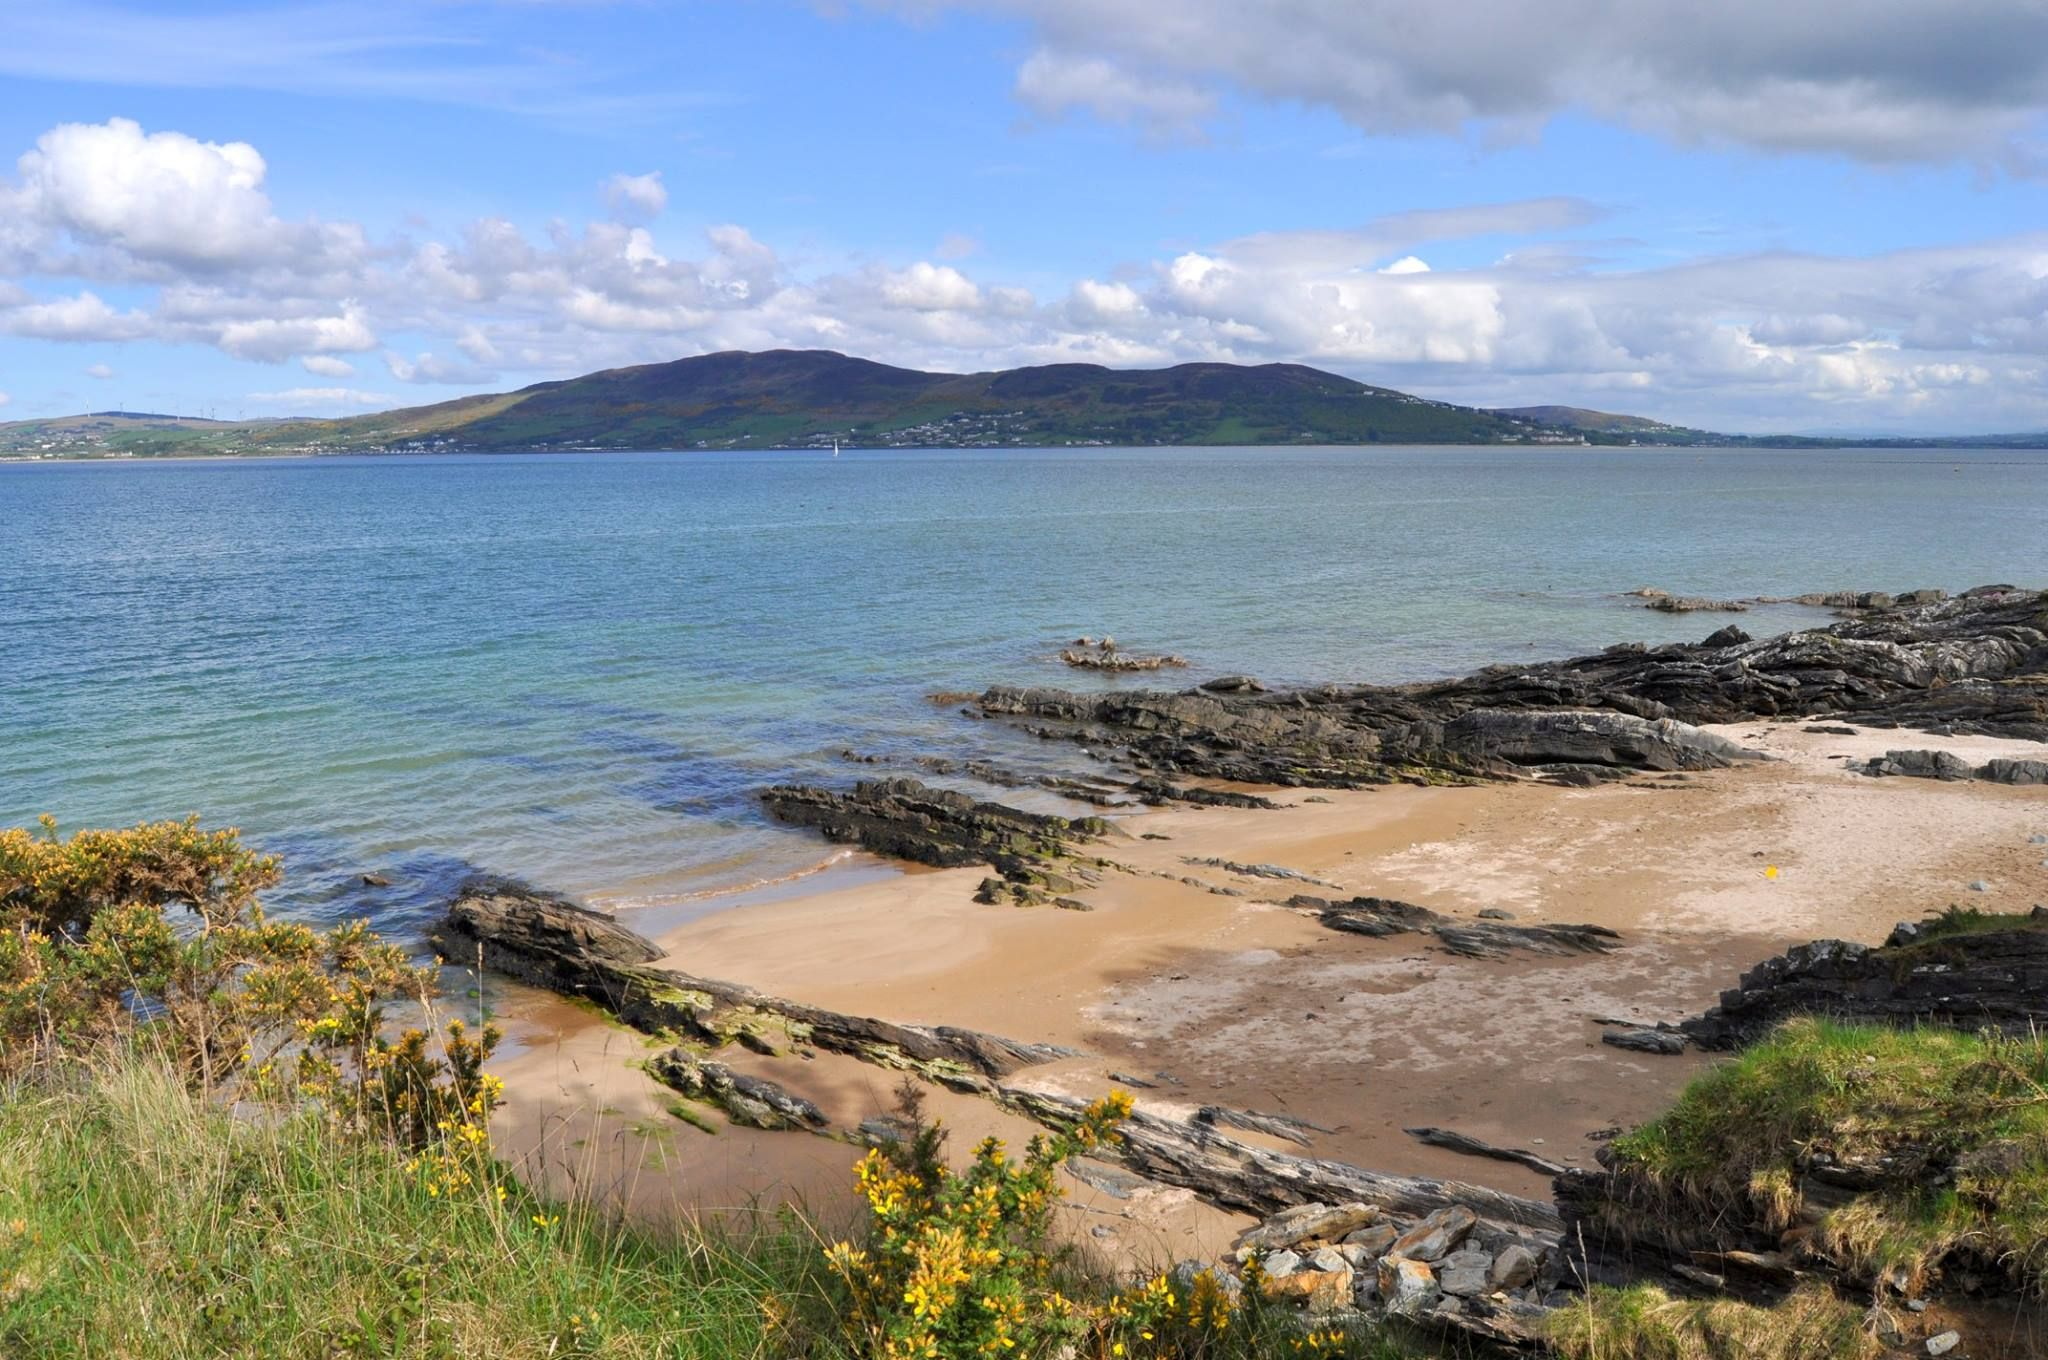 Looking across Lough Swilly towards Lisfannon from